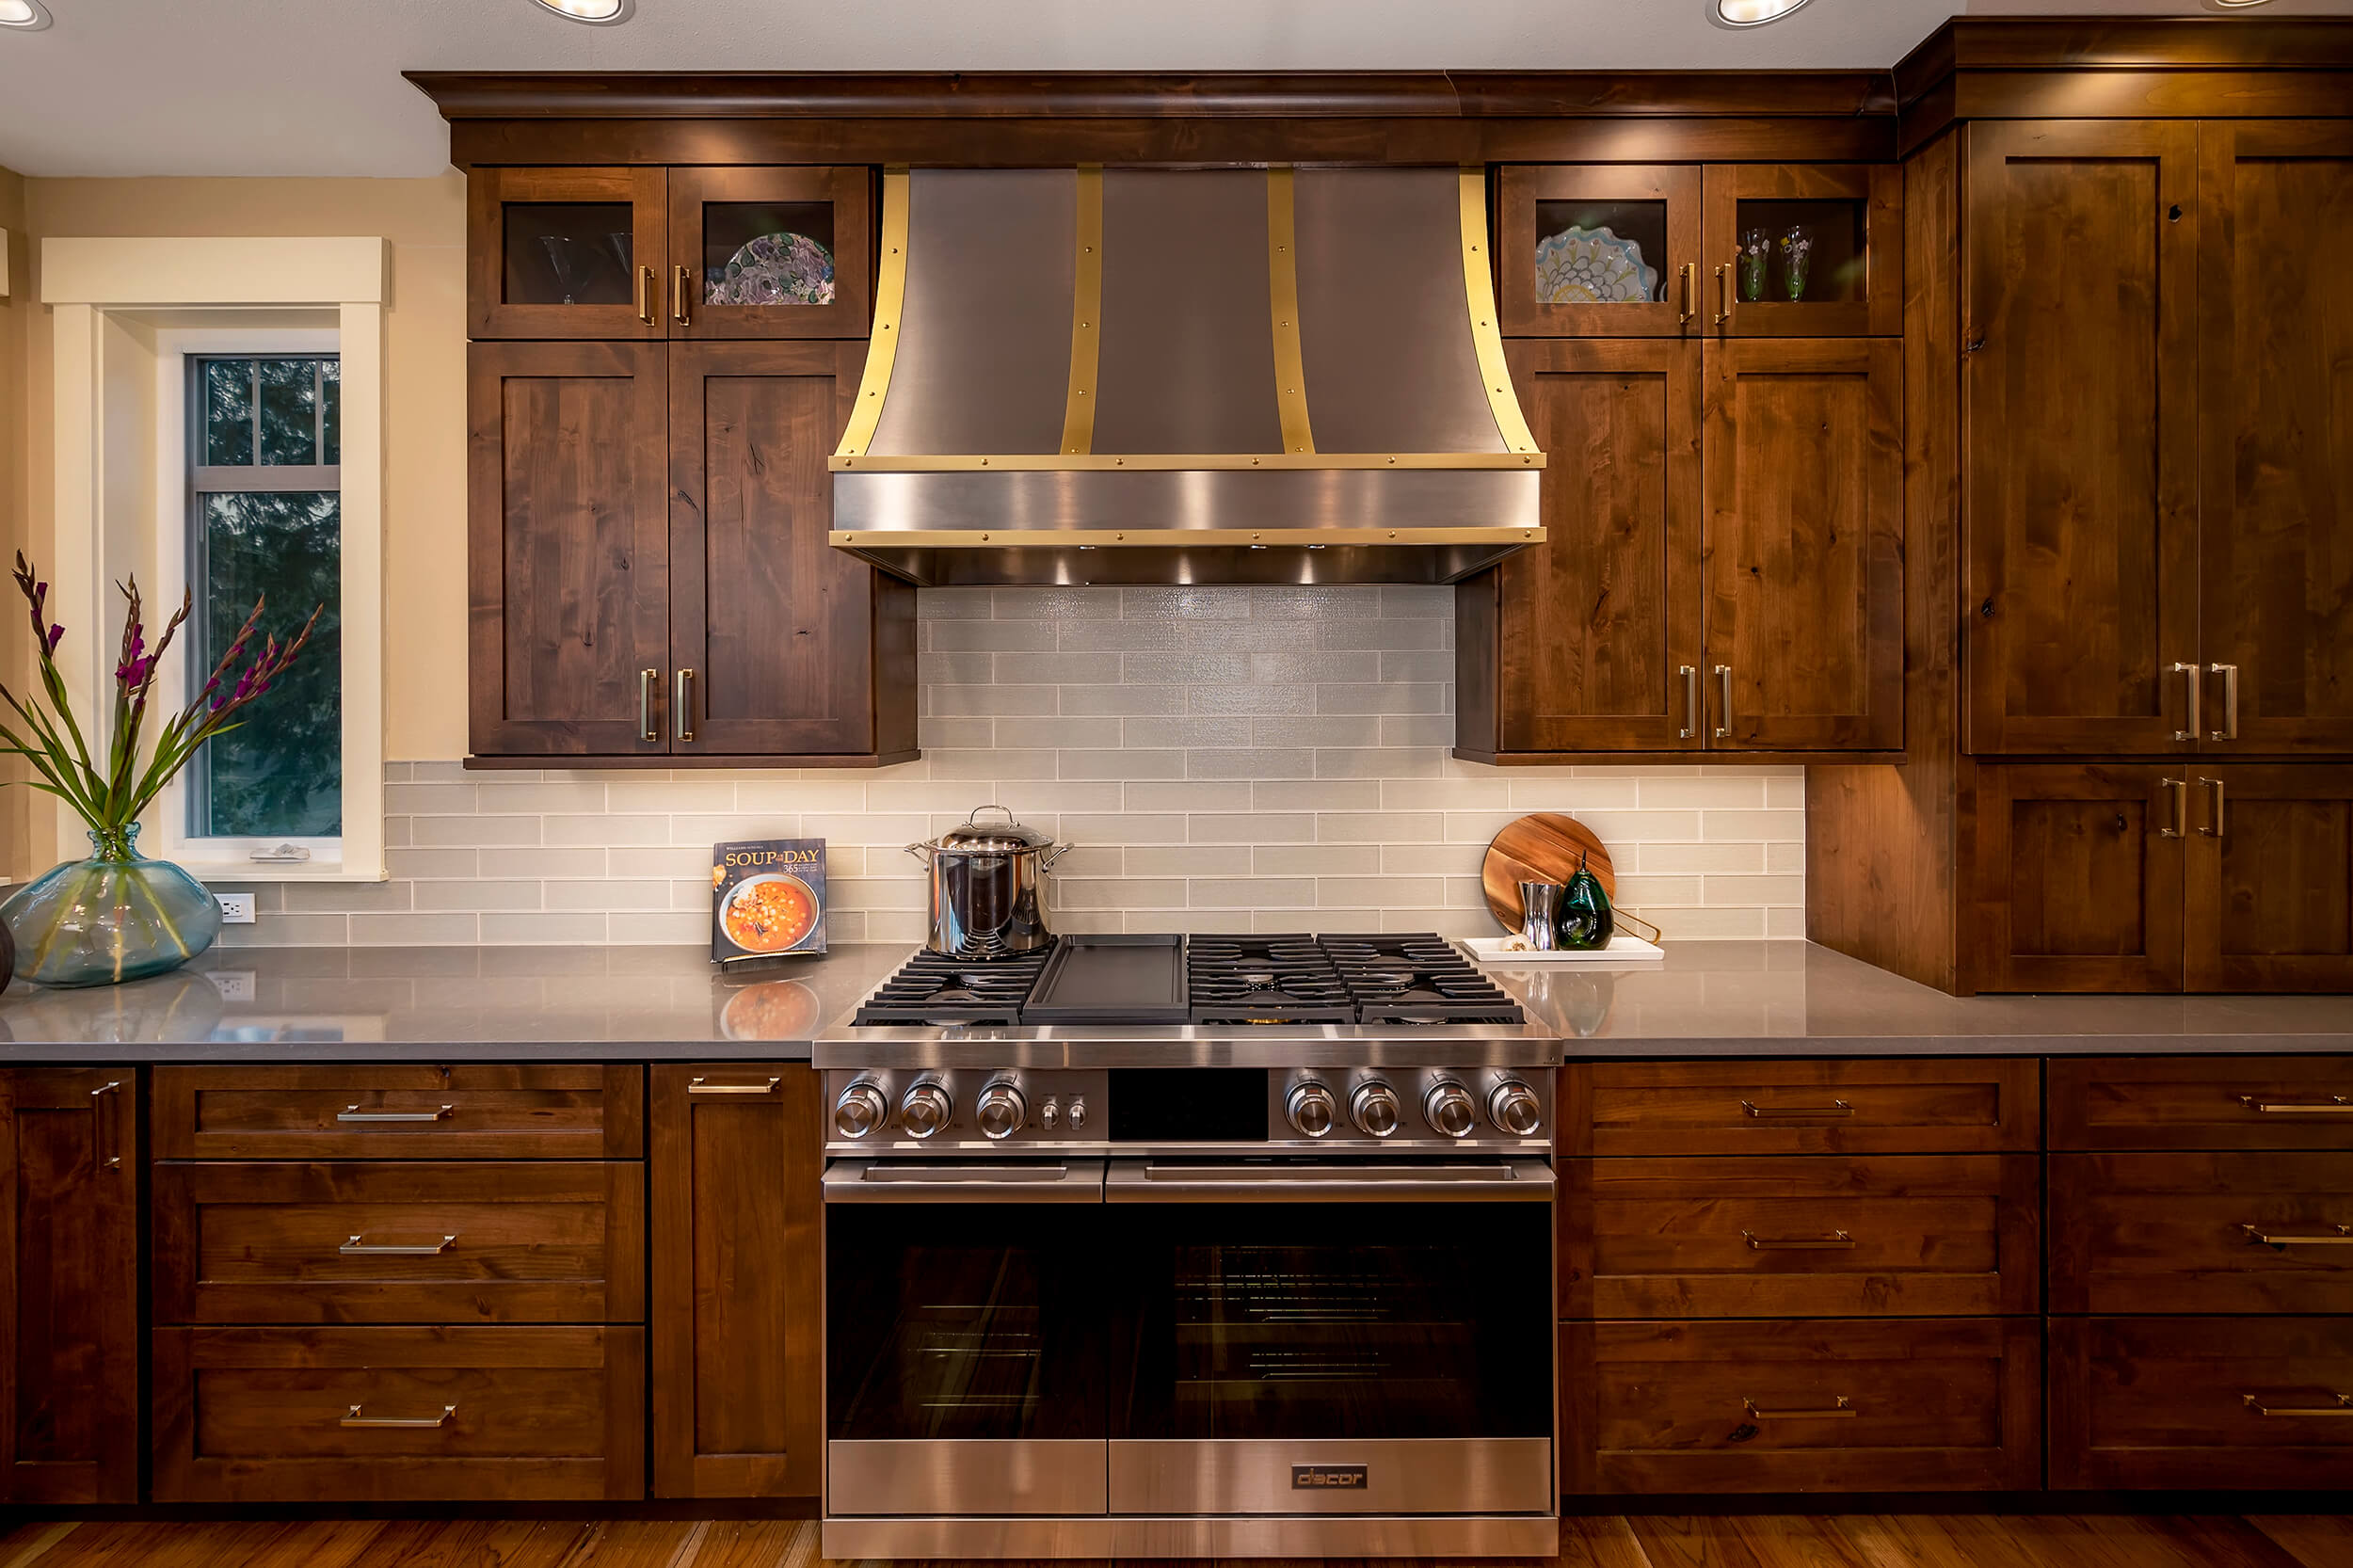 Knotty And Nice Explore The Options With Knotty Alder Cabinetry Dura Supreme Cabinetry